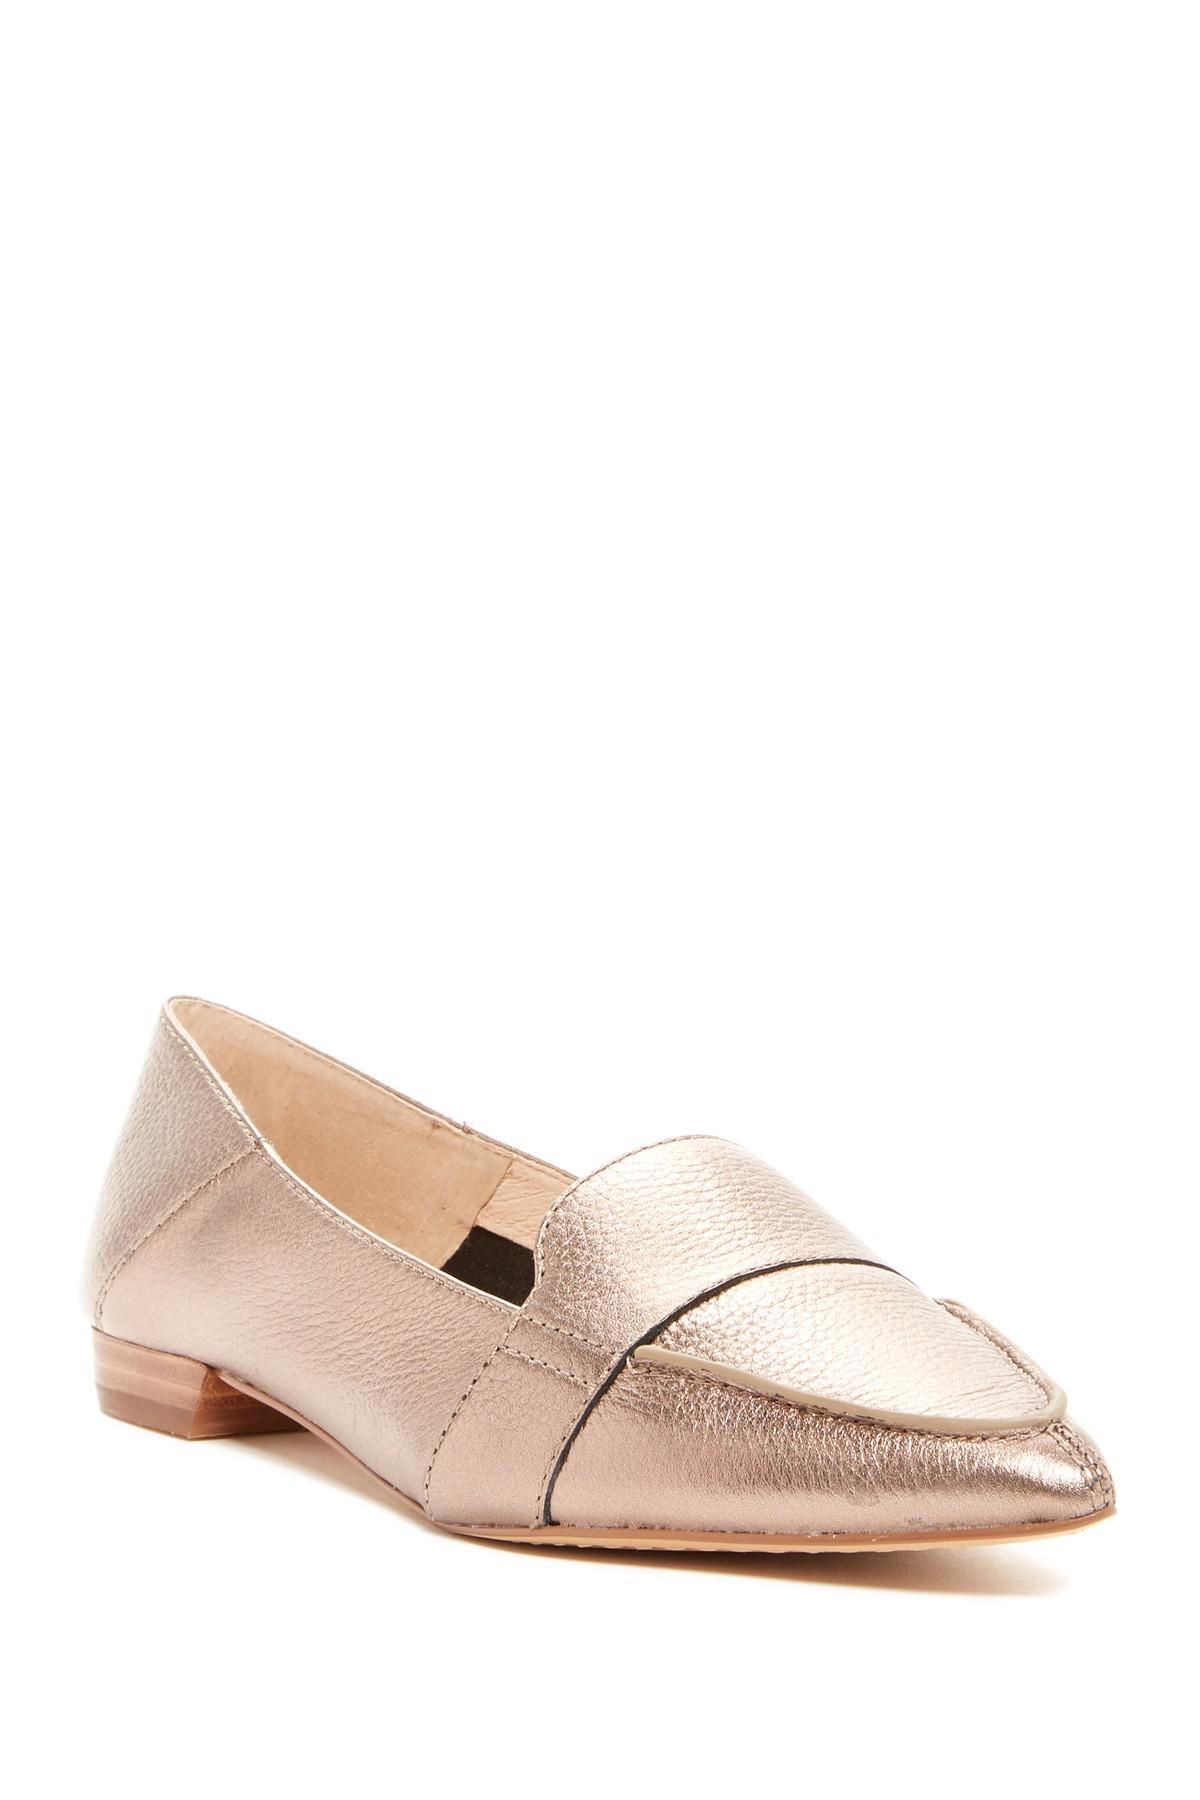 6ac63ce1251 Lyst - Vince Camuto Maita Casual Loafer